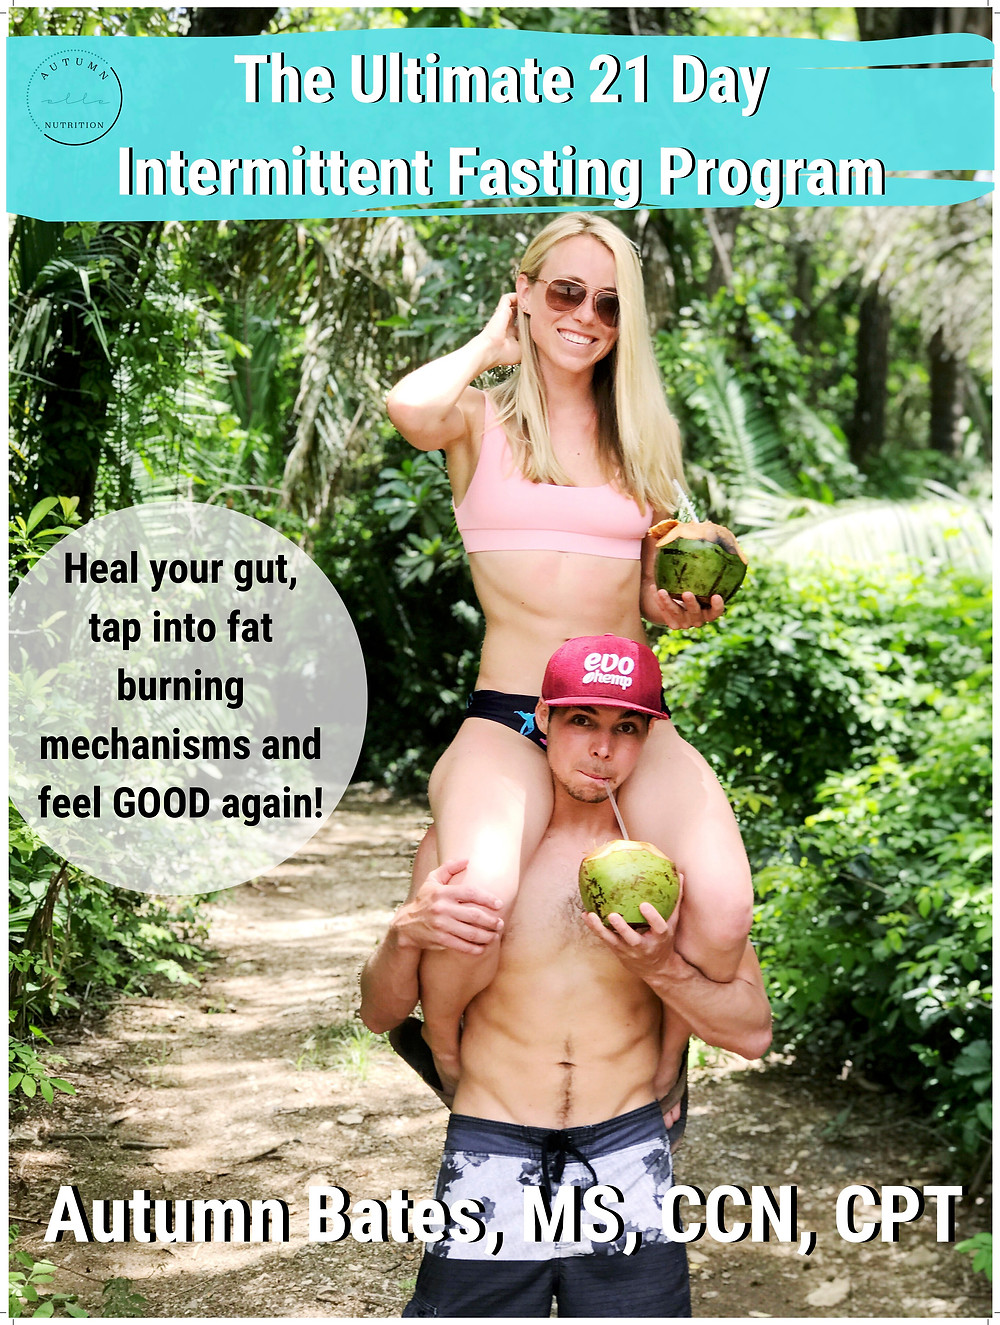 autumn bates review autumn bates intermittent fasting program review